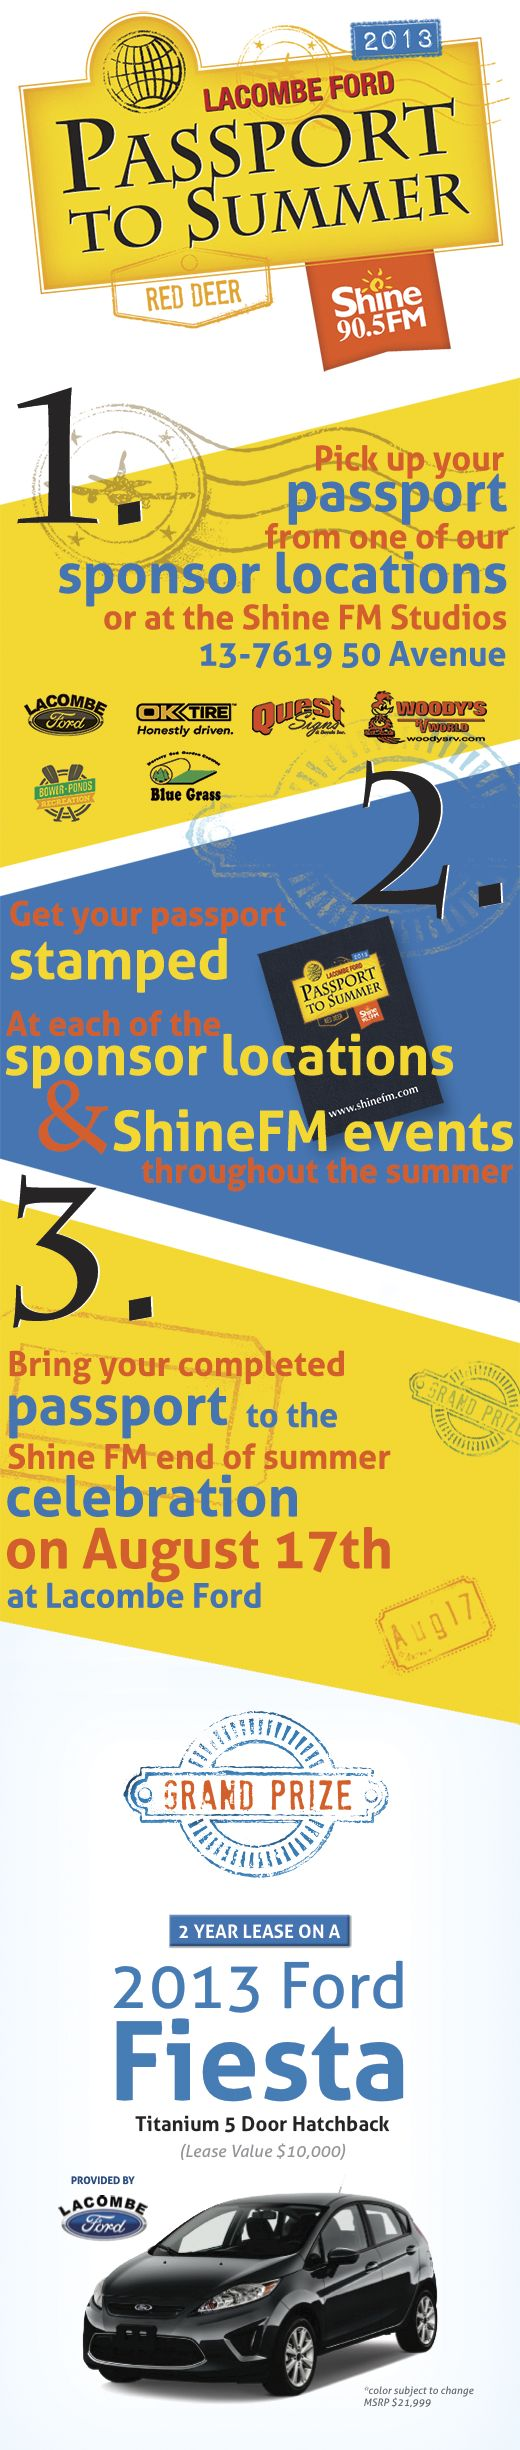 Fill up your passport with stamps and be entered to win a 2 year lease on a NEW 2013 FORD FIESTA!